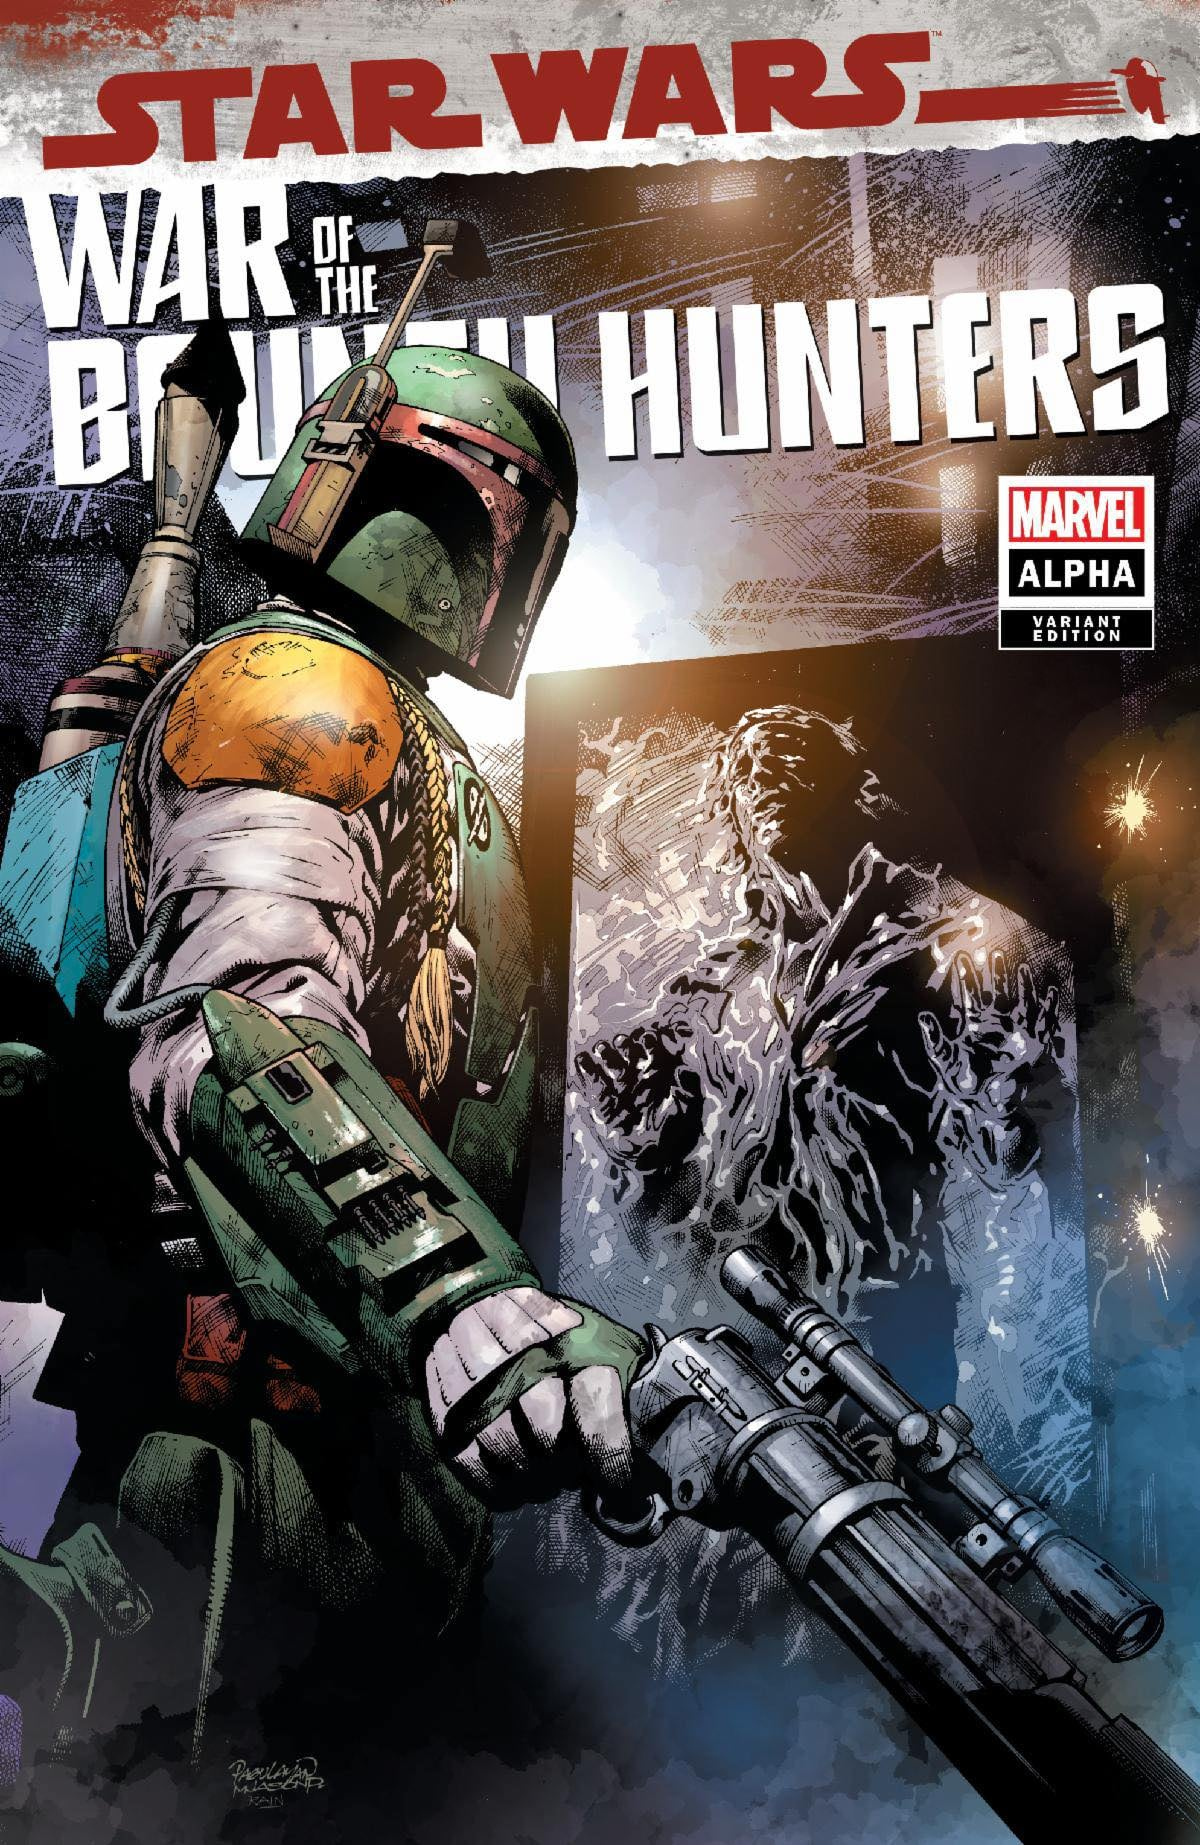 Star Wars: War of the Bounty Hunters Alpha - Devil Dog Comics Variant